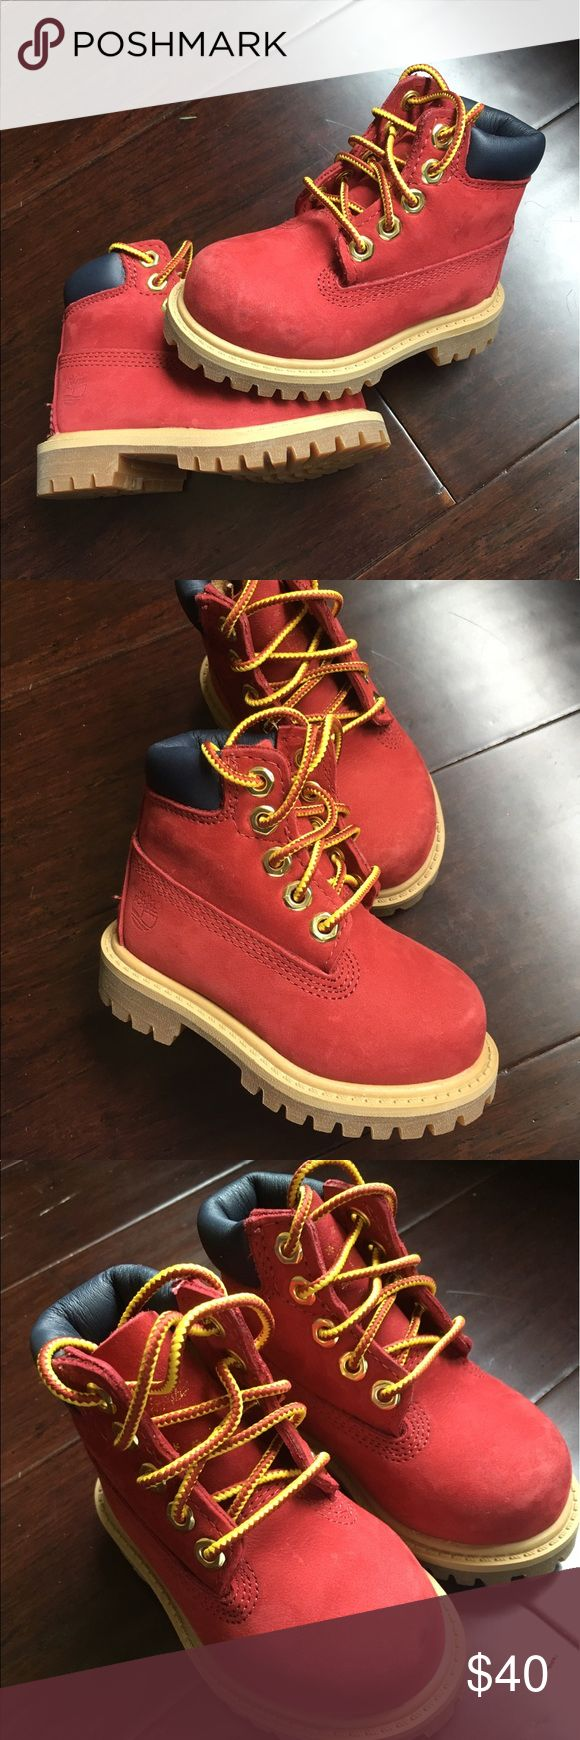 "Timberland 6"" Classic Boot Toddler Timberland boot Patriotic Red in Great condition Timberland Shoes Boots"